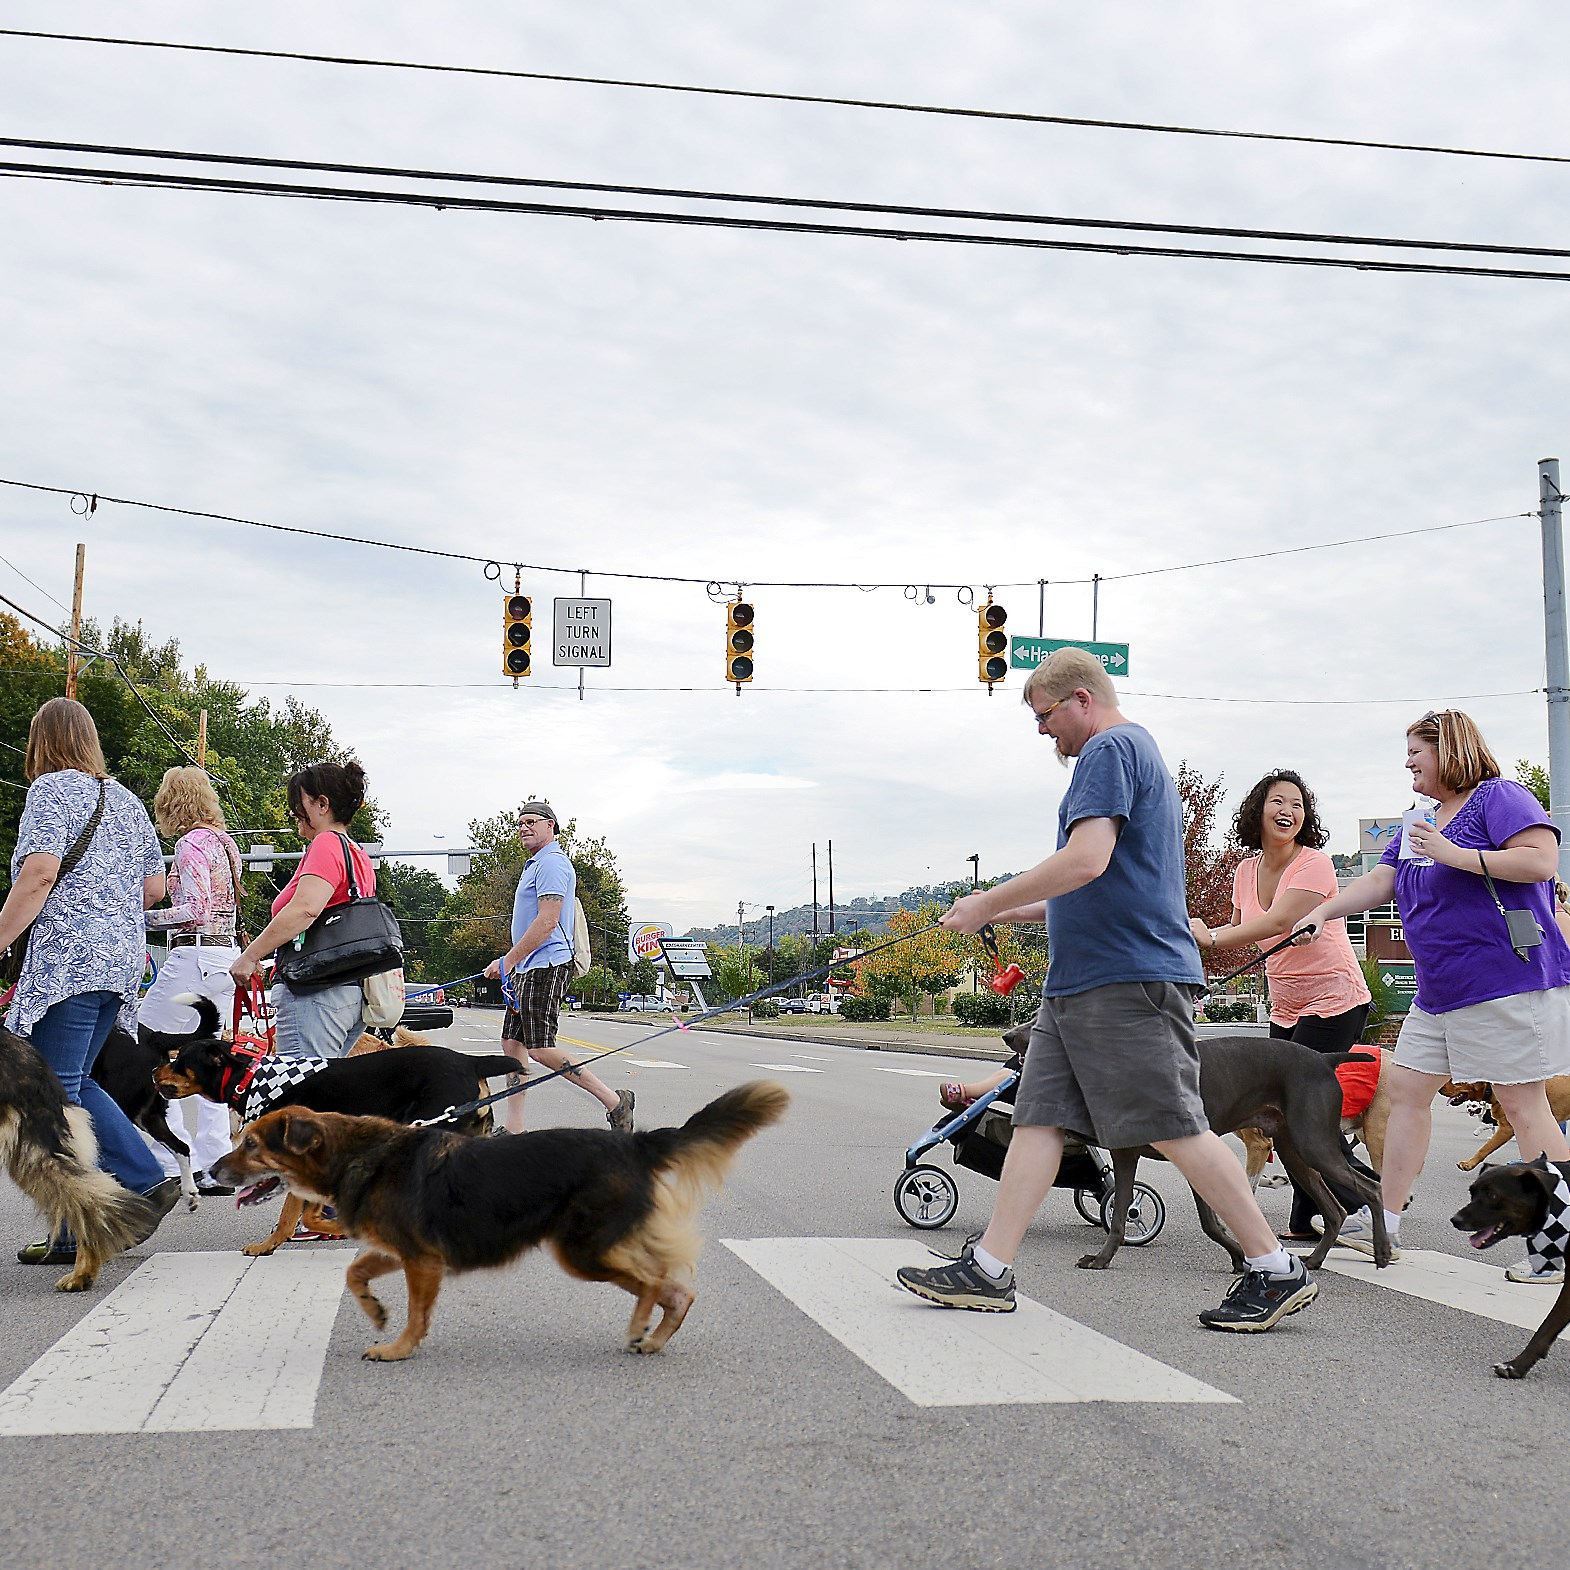 About 60 people participated in Walk & Wine Sept. 28 in Sewickley. The event was a walk for people and their dogs that ended at Sewickley Cafe for a glass of wine.